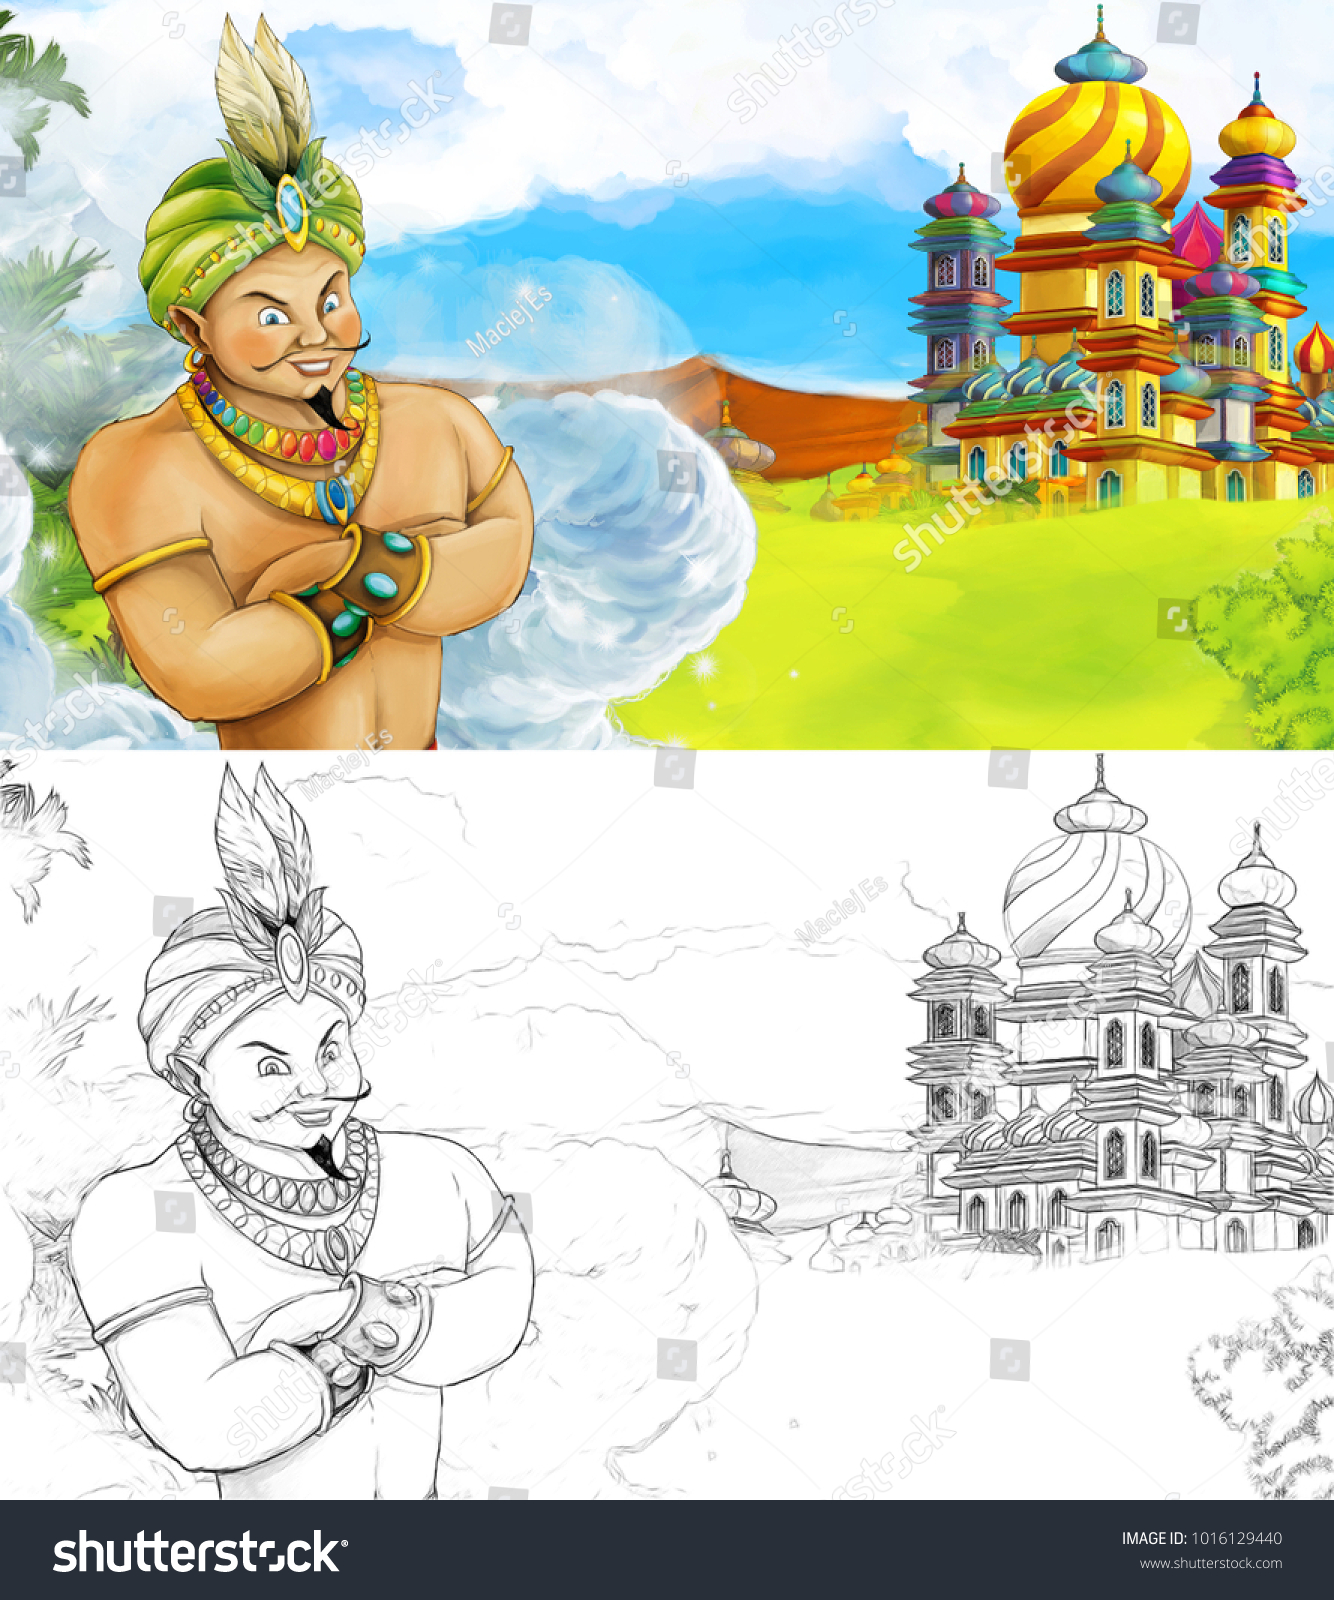 stock photo cartoon scene with happy king od prince near the castle looking around beautiful sunny day with